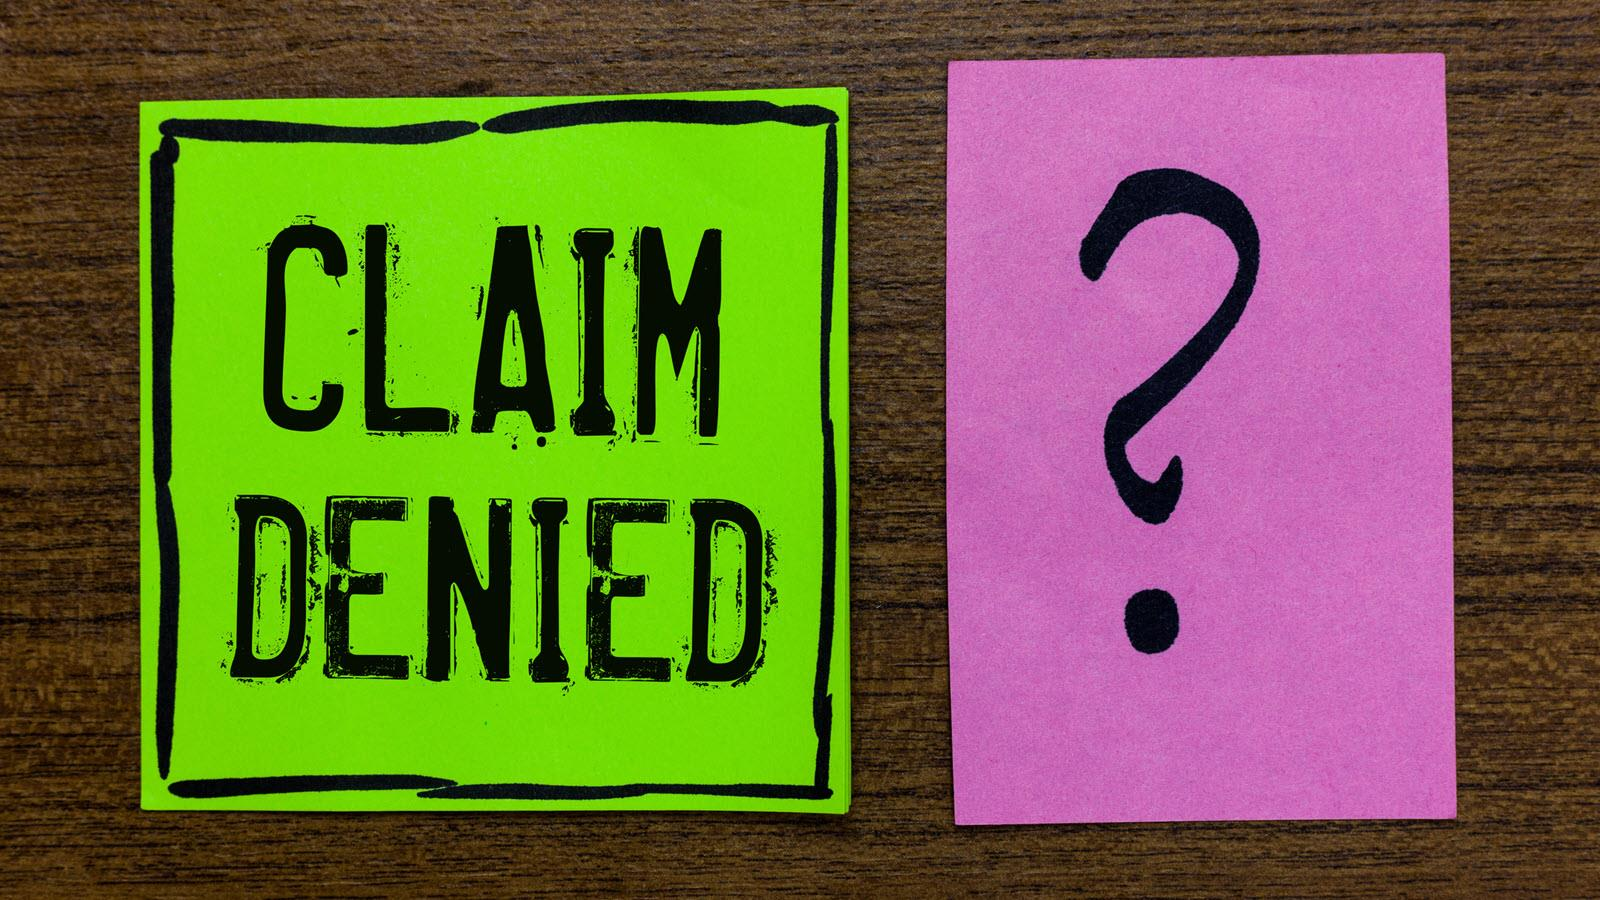 claim denied with a question mark